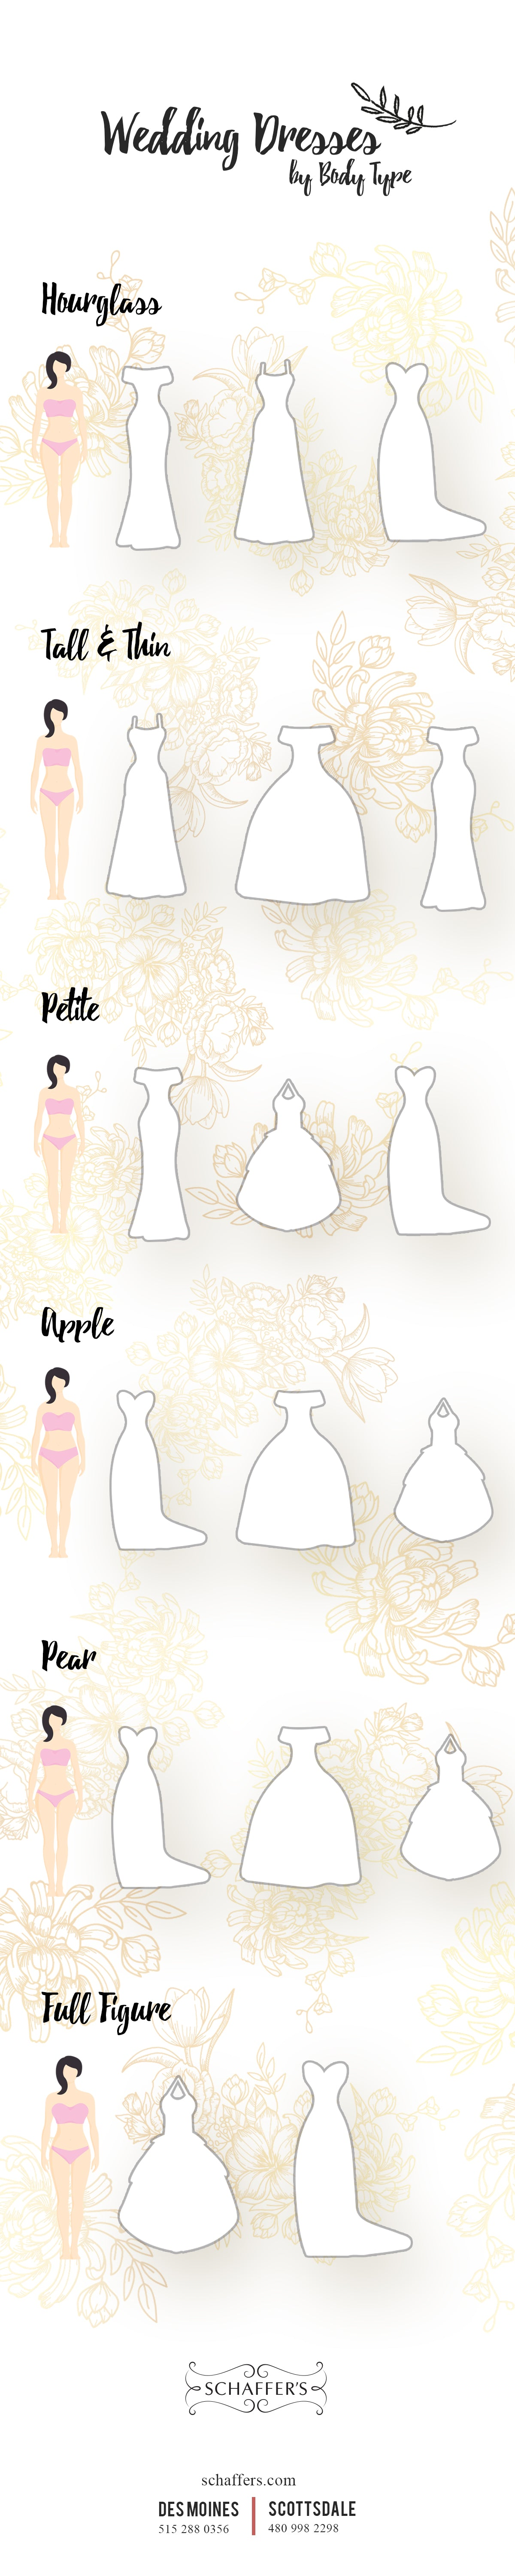 Wedding Dress Styles by Body Type | Wedding Dresses in Des Moines & Scottsdale